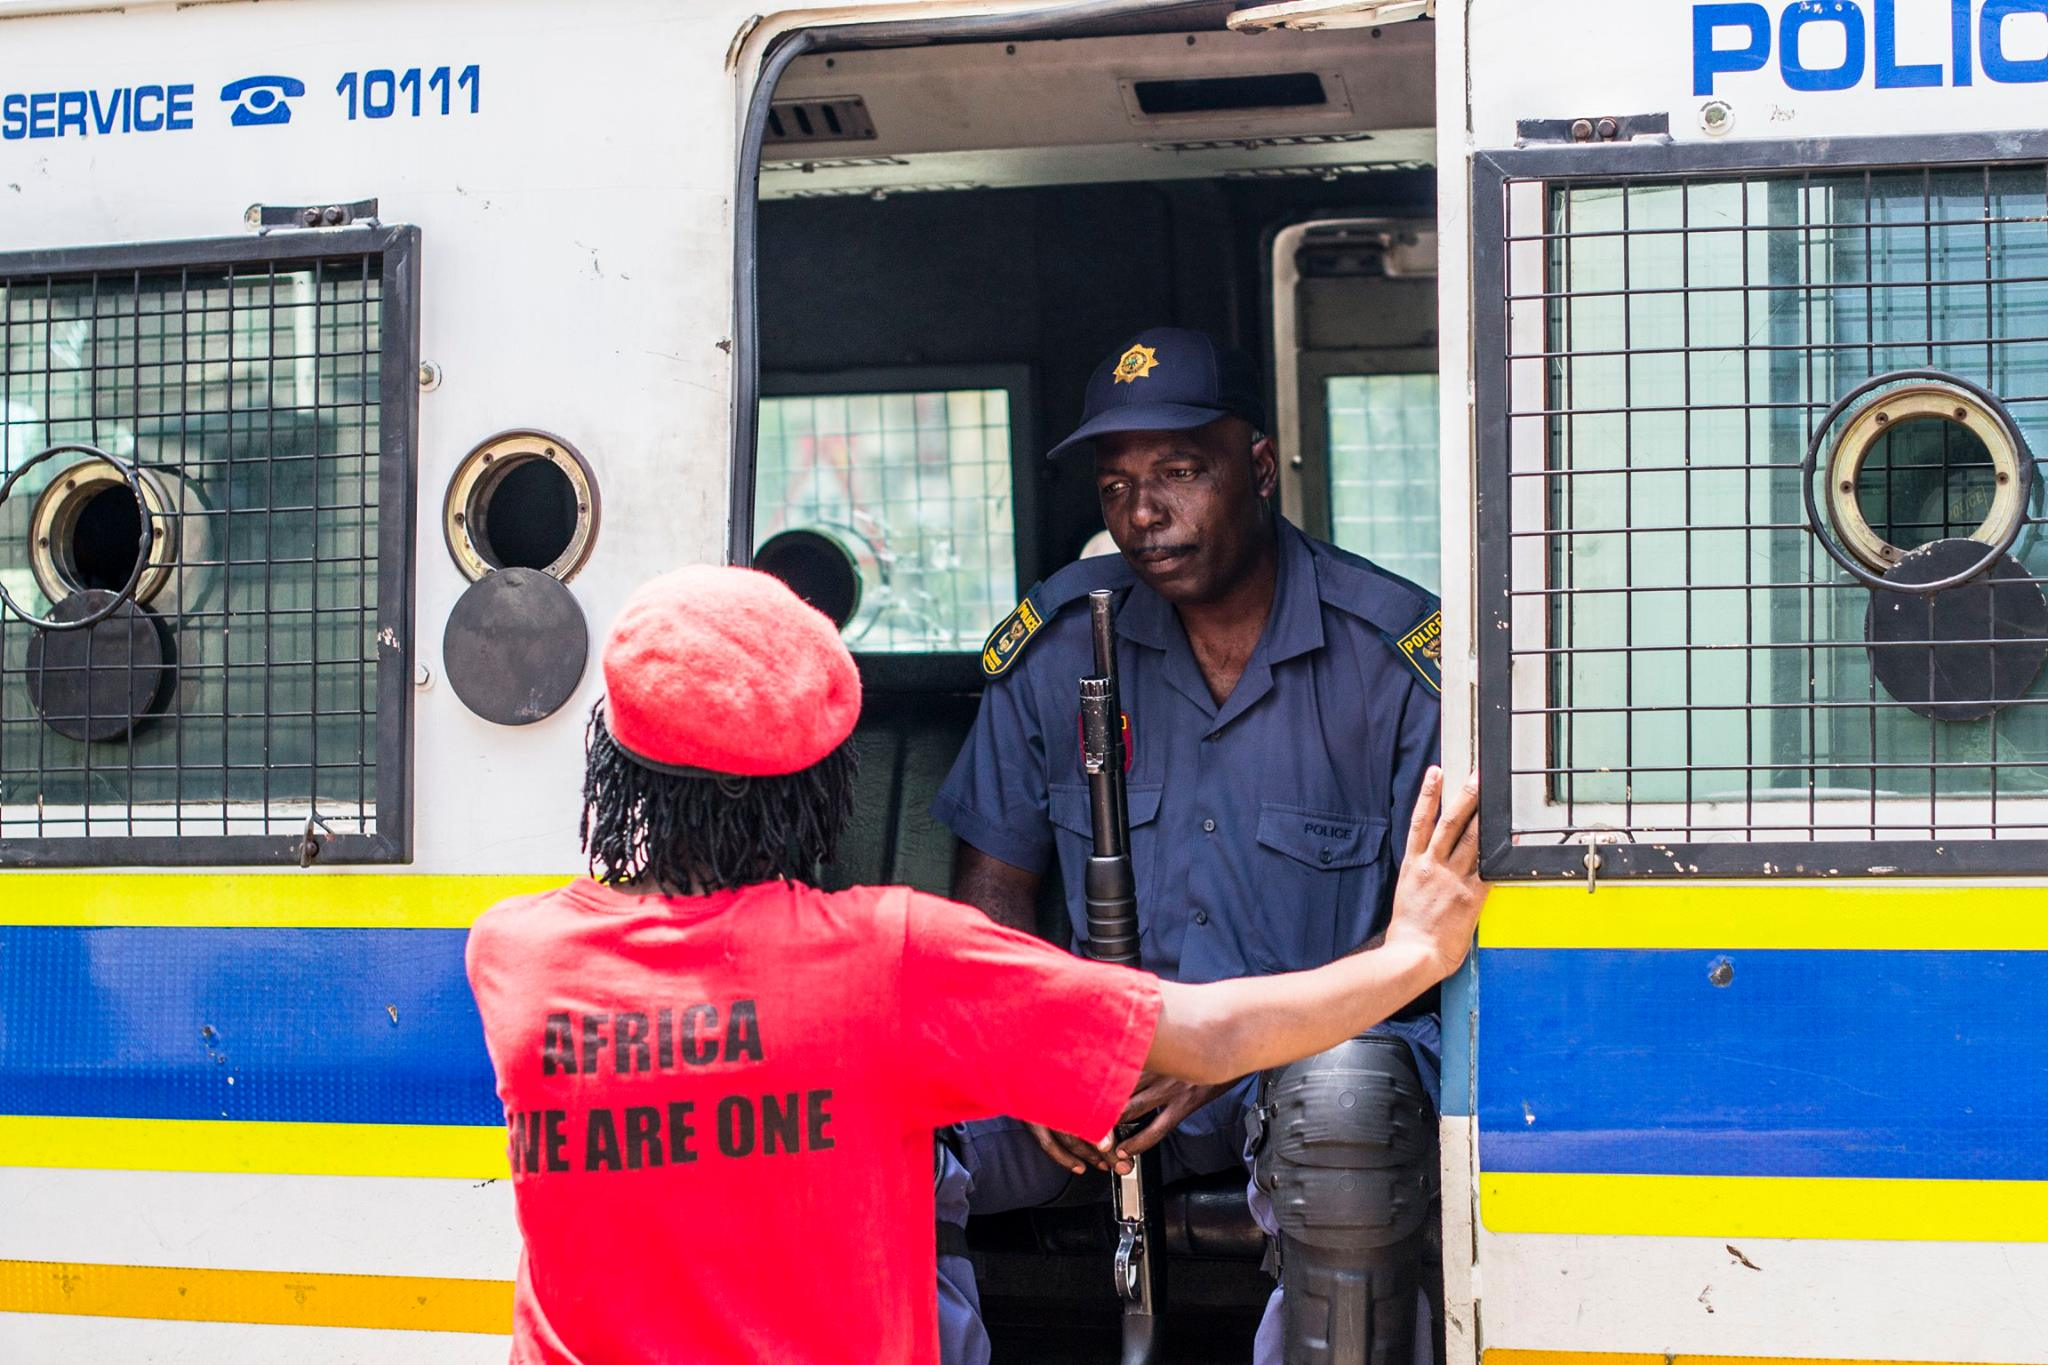 A policeman and protester speak calmly with one another amidst a  confrontation between police and protesters at the University of Pretoria.